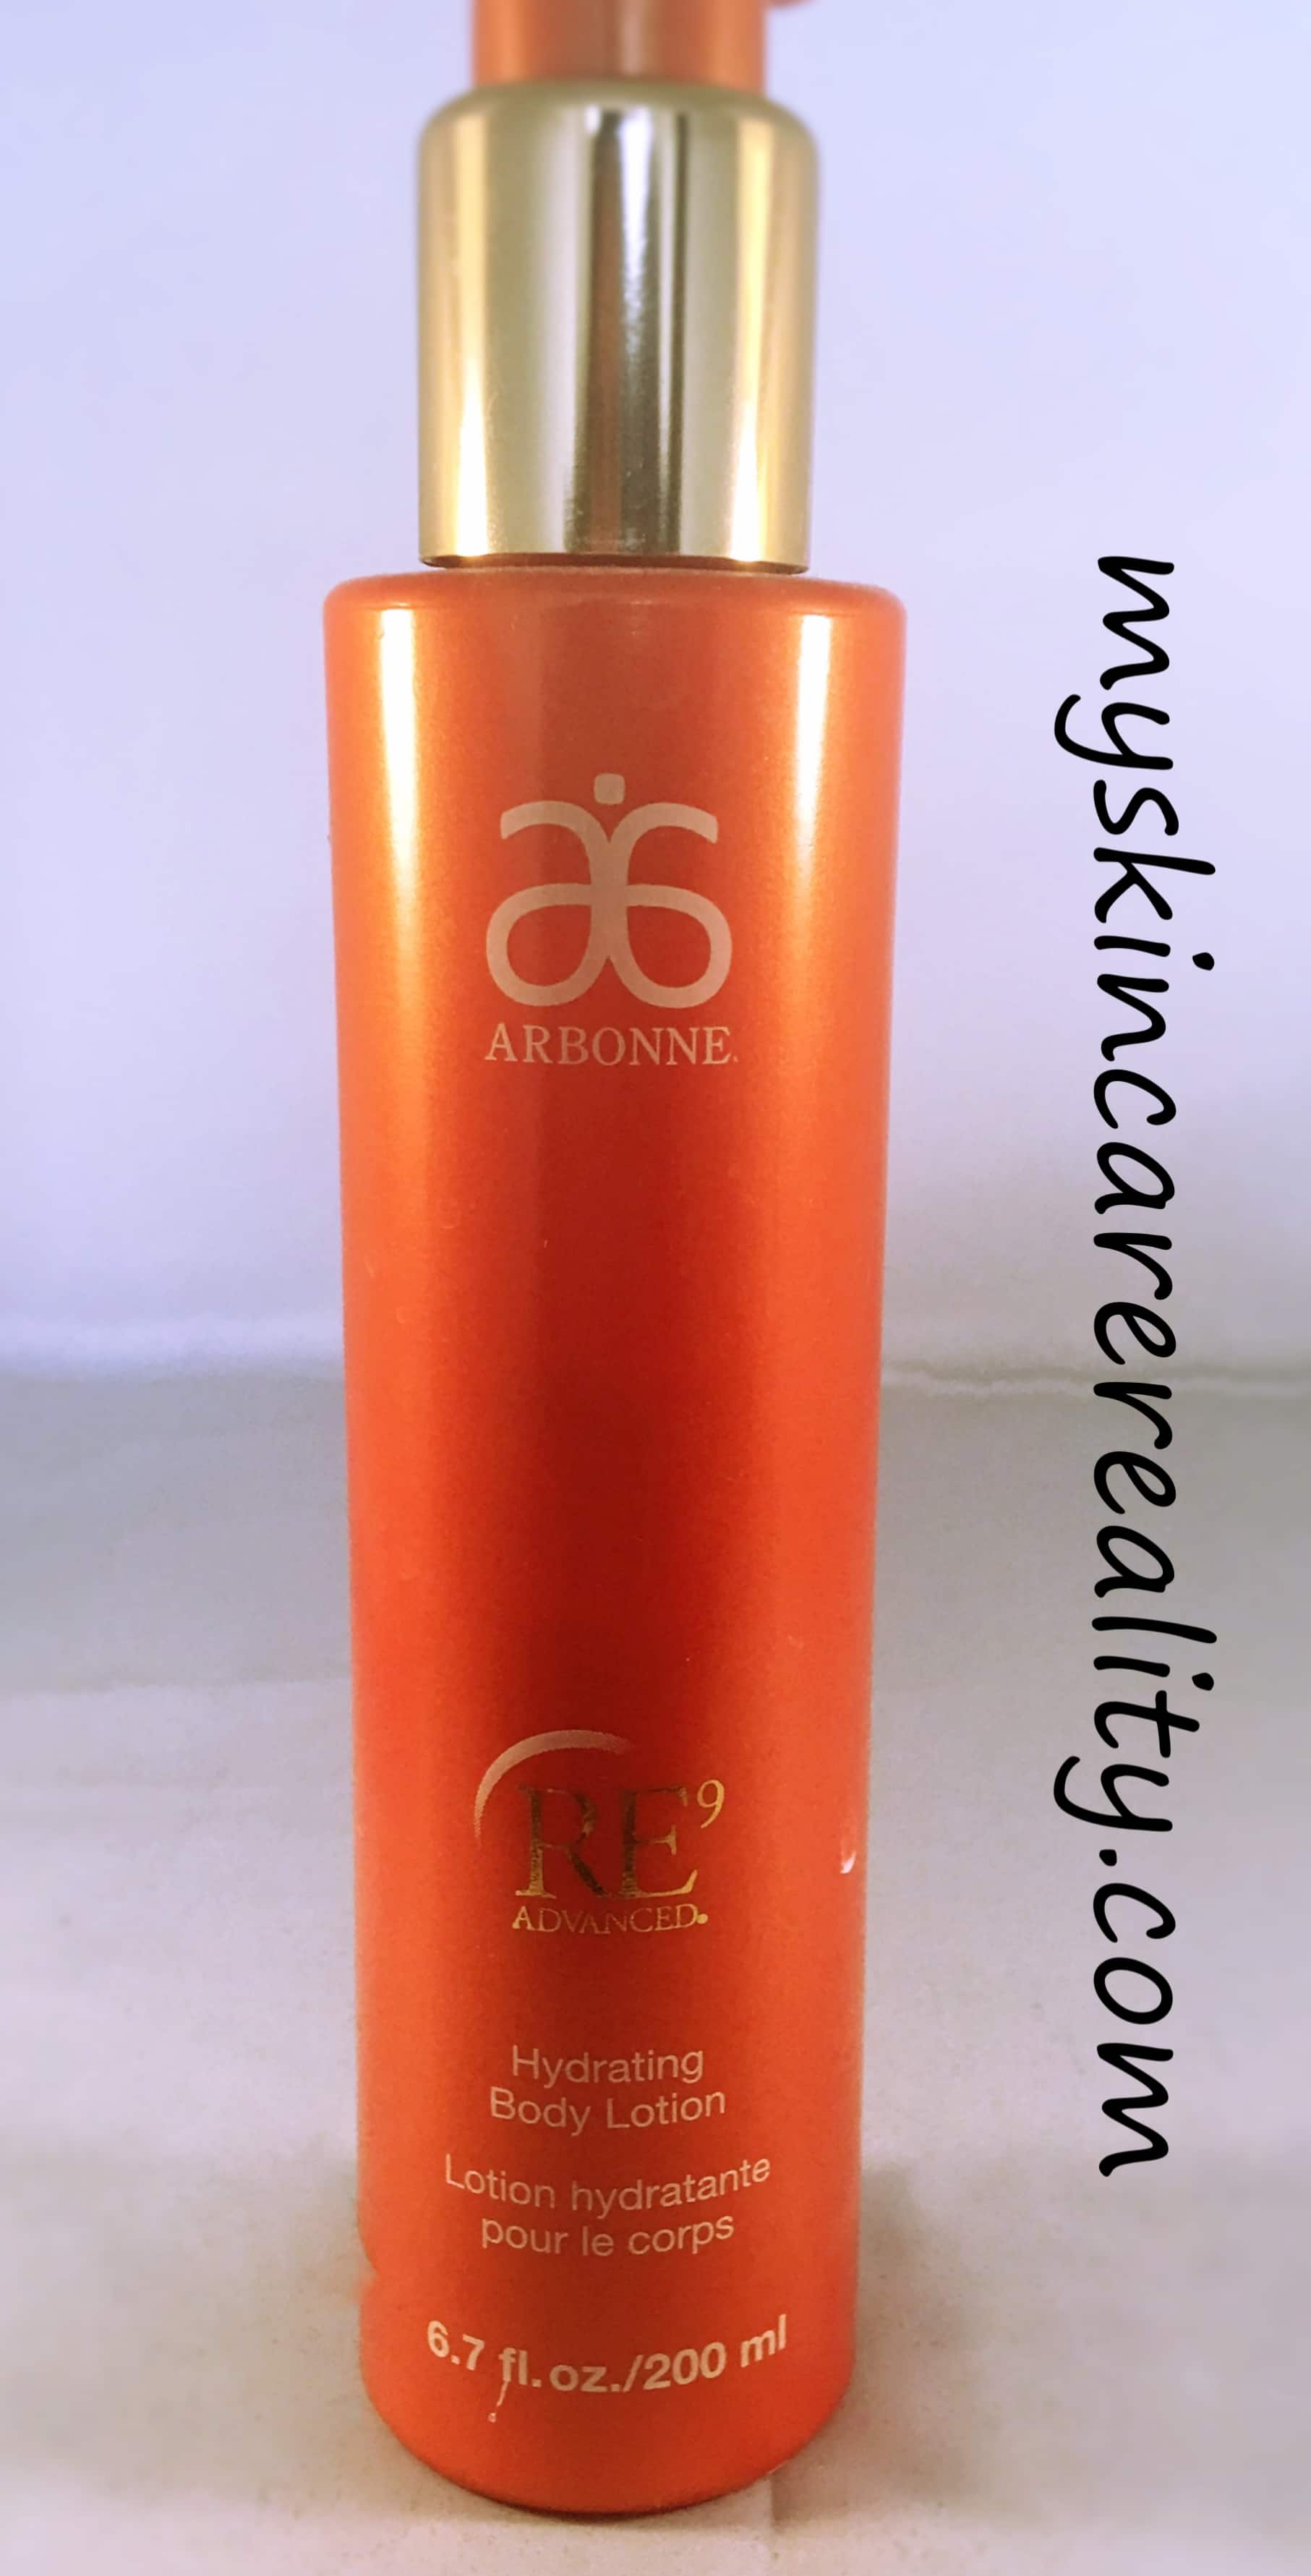 Arbonne RE9 Hydrating Body Lotion | Review | Worth the Price?